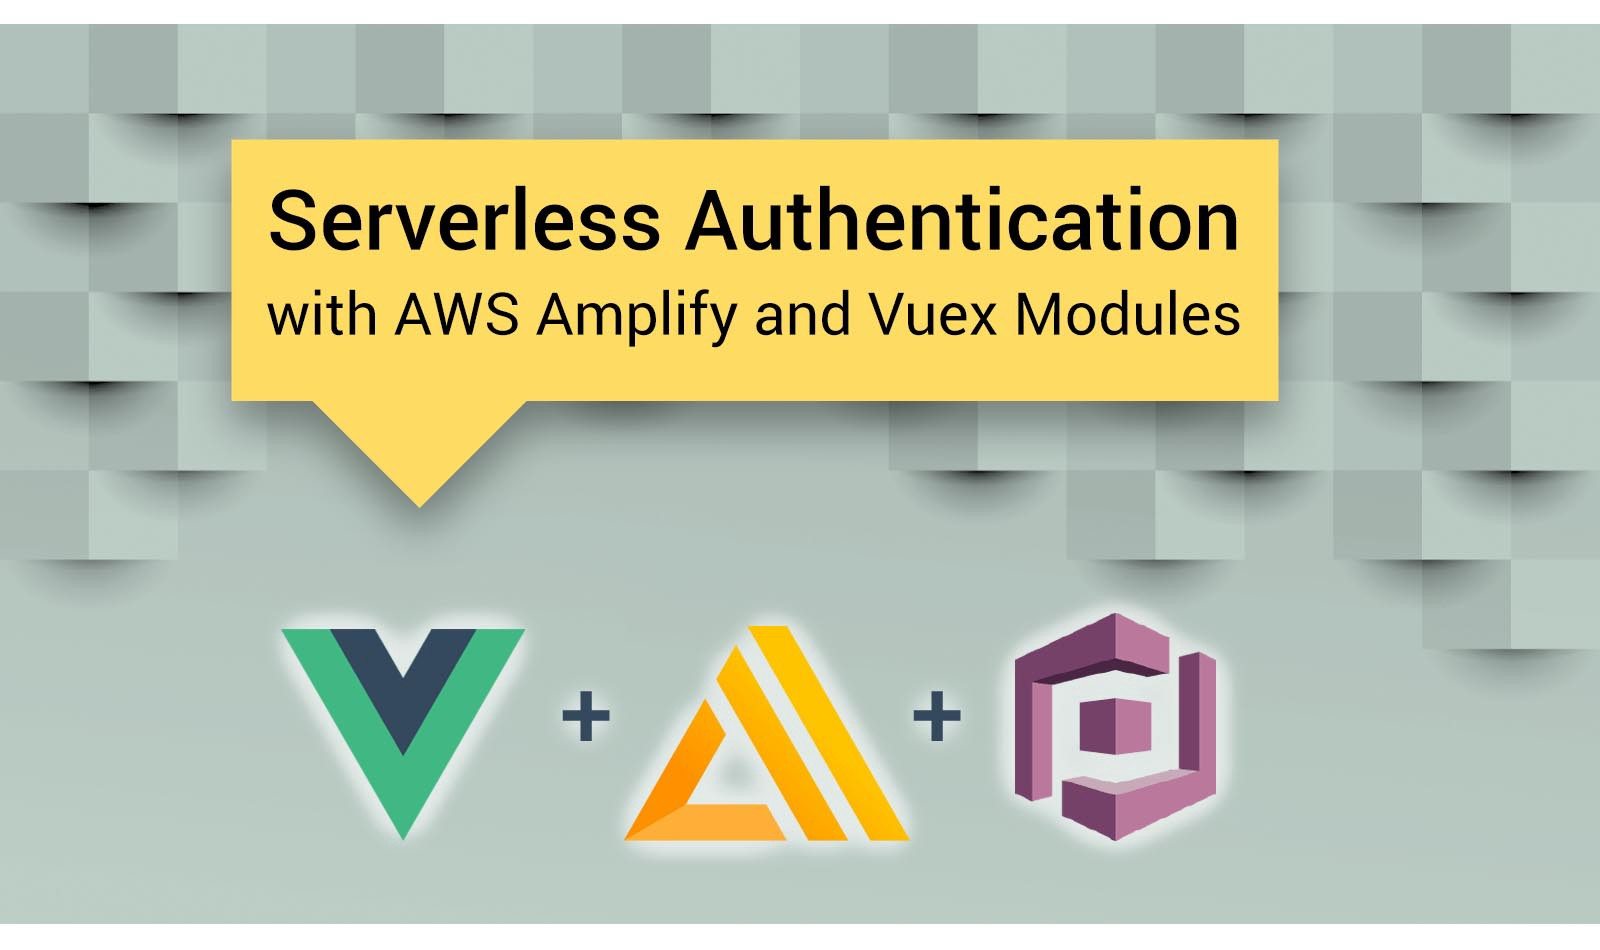 Serverless Authentication with AWS Amplify and Vuex Modules